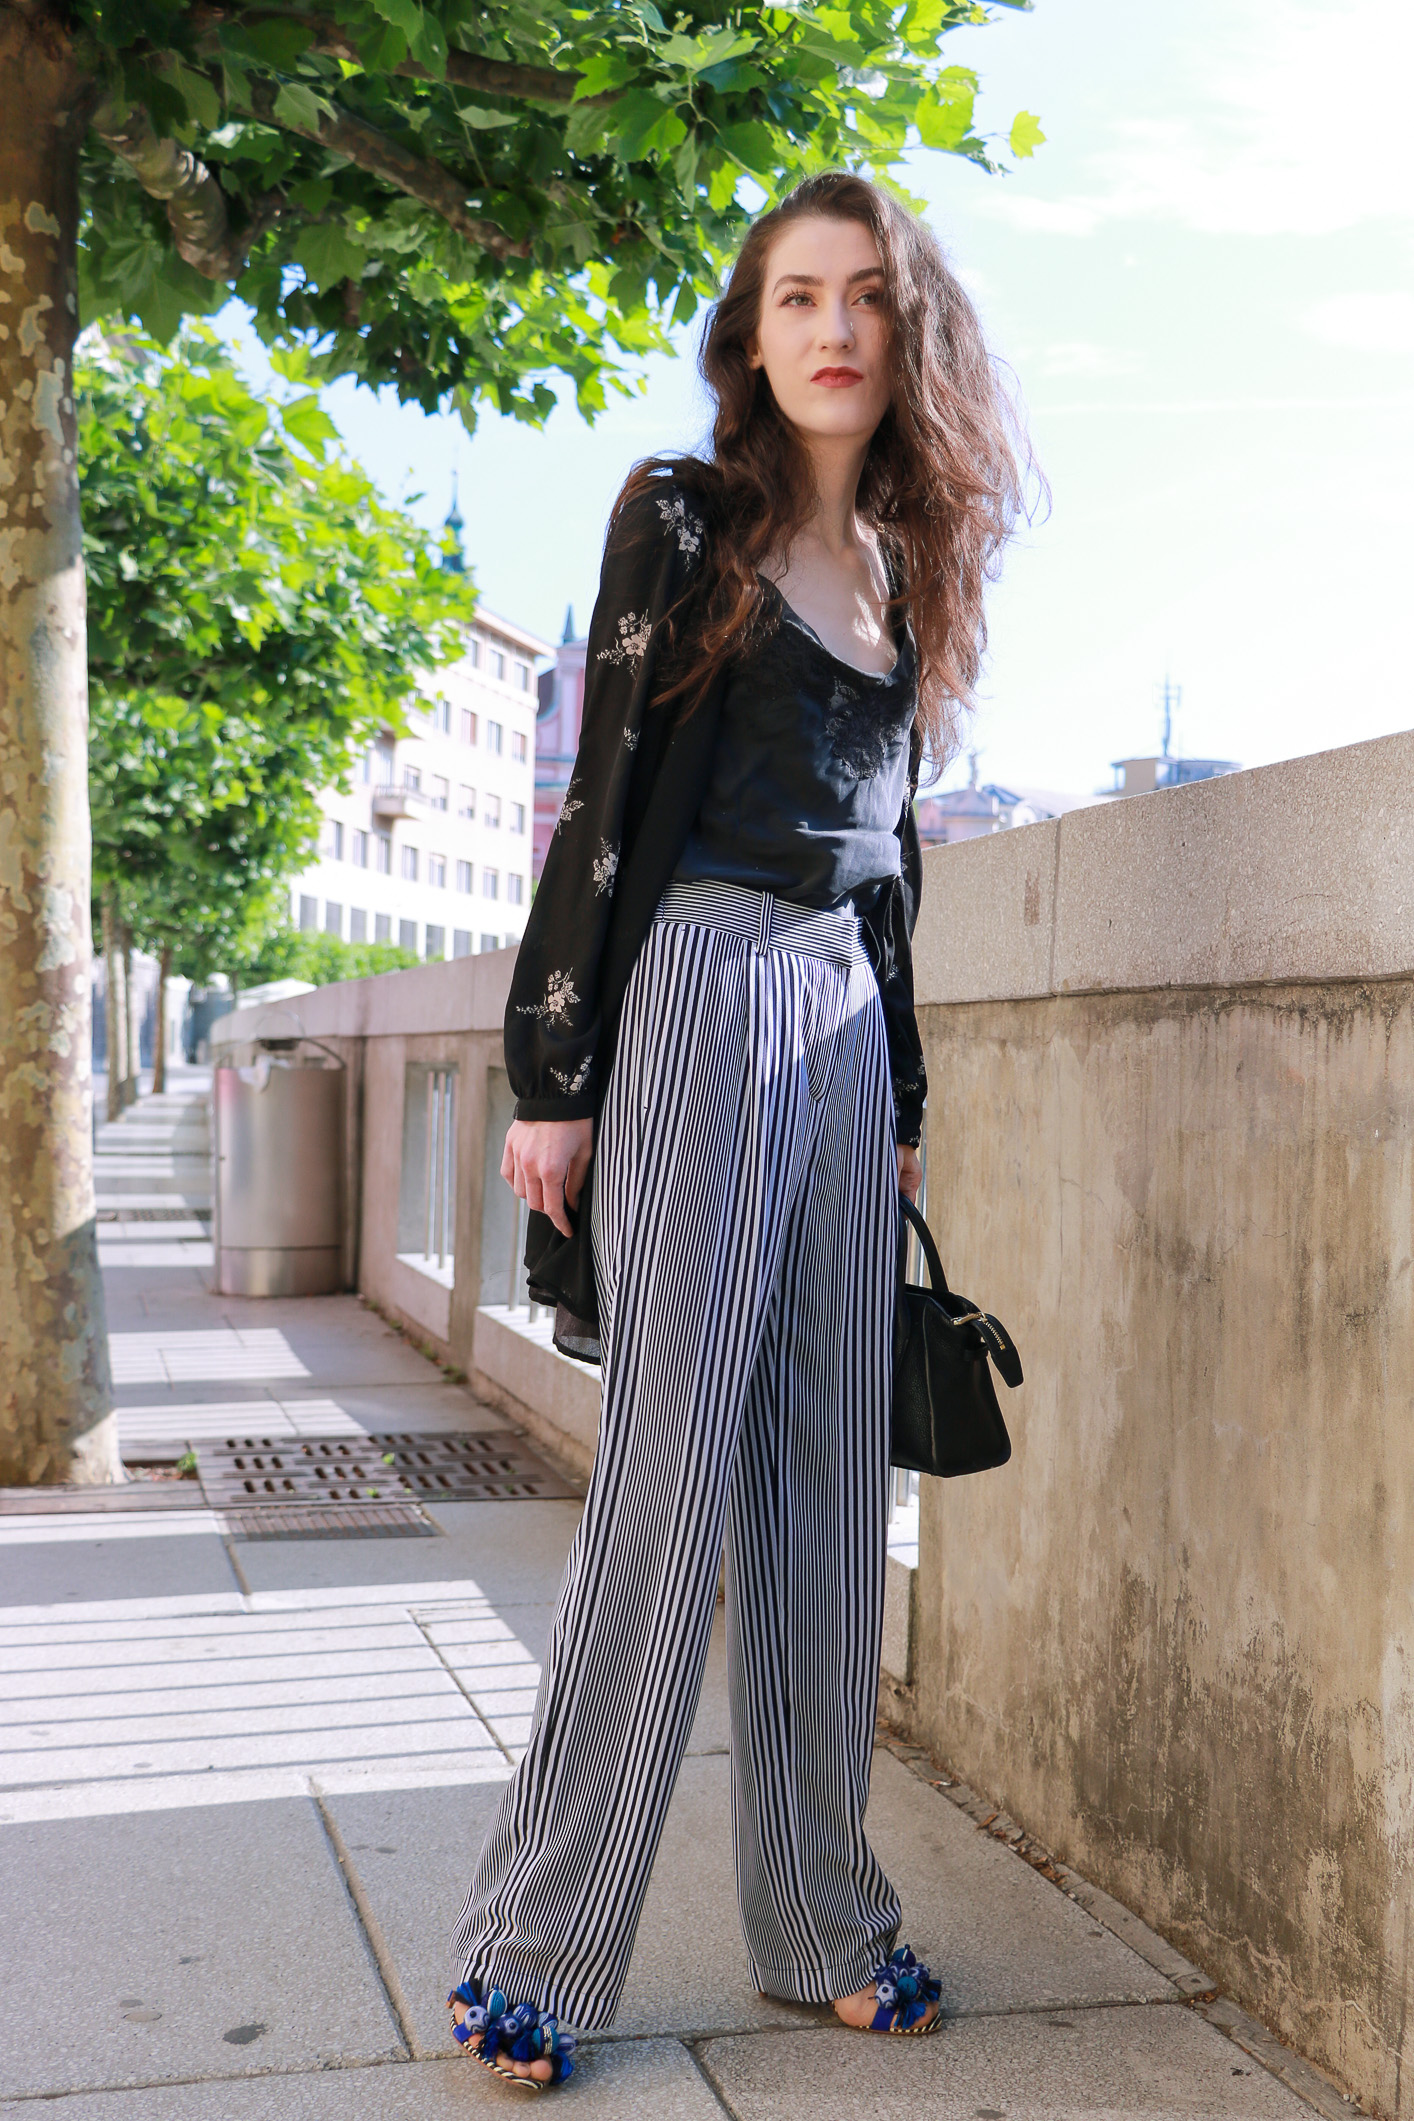 Fashion blogger Veronika Lipar of Brunette From Wall Street sharing how to wear kimono this summer